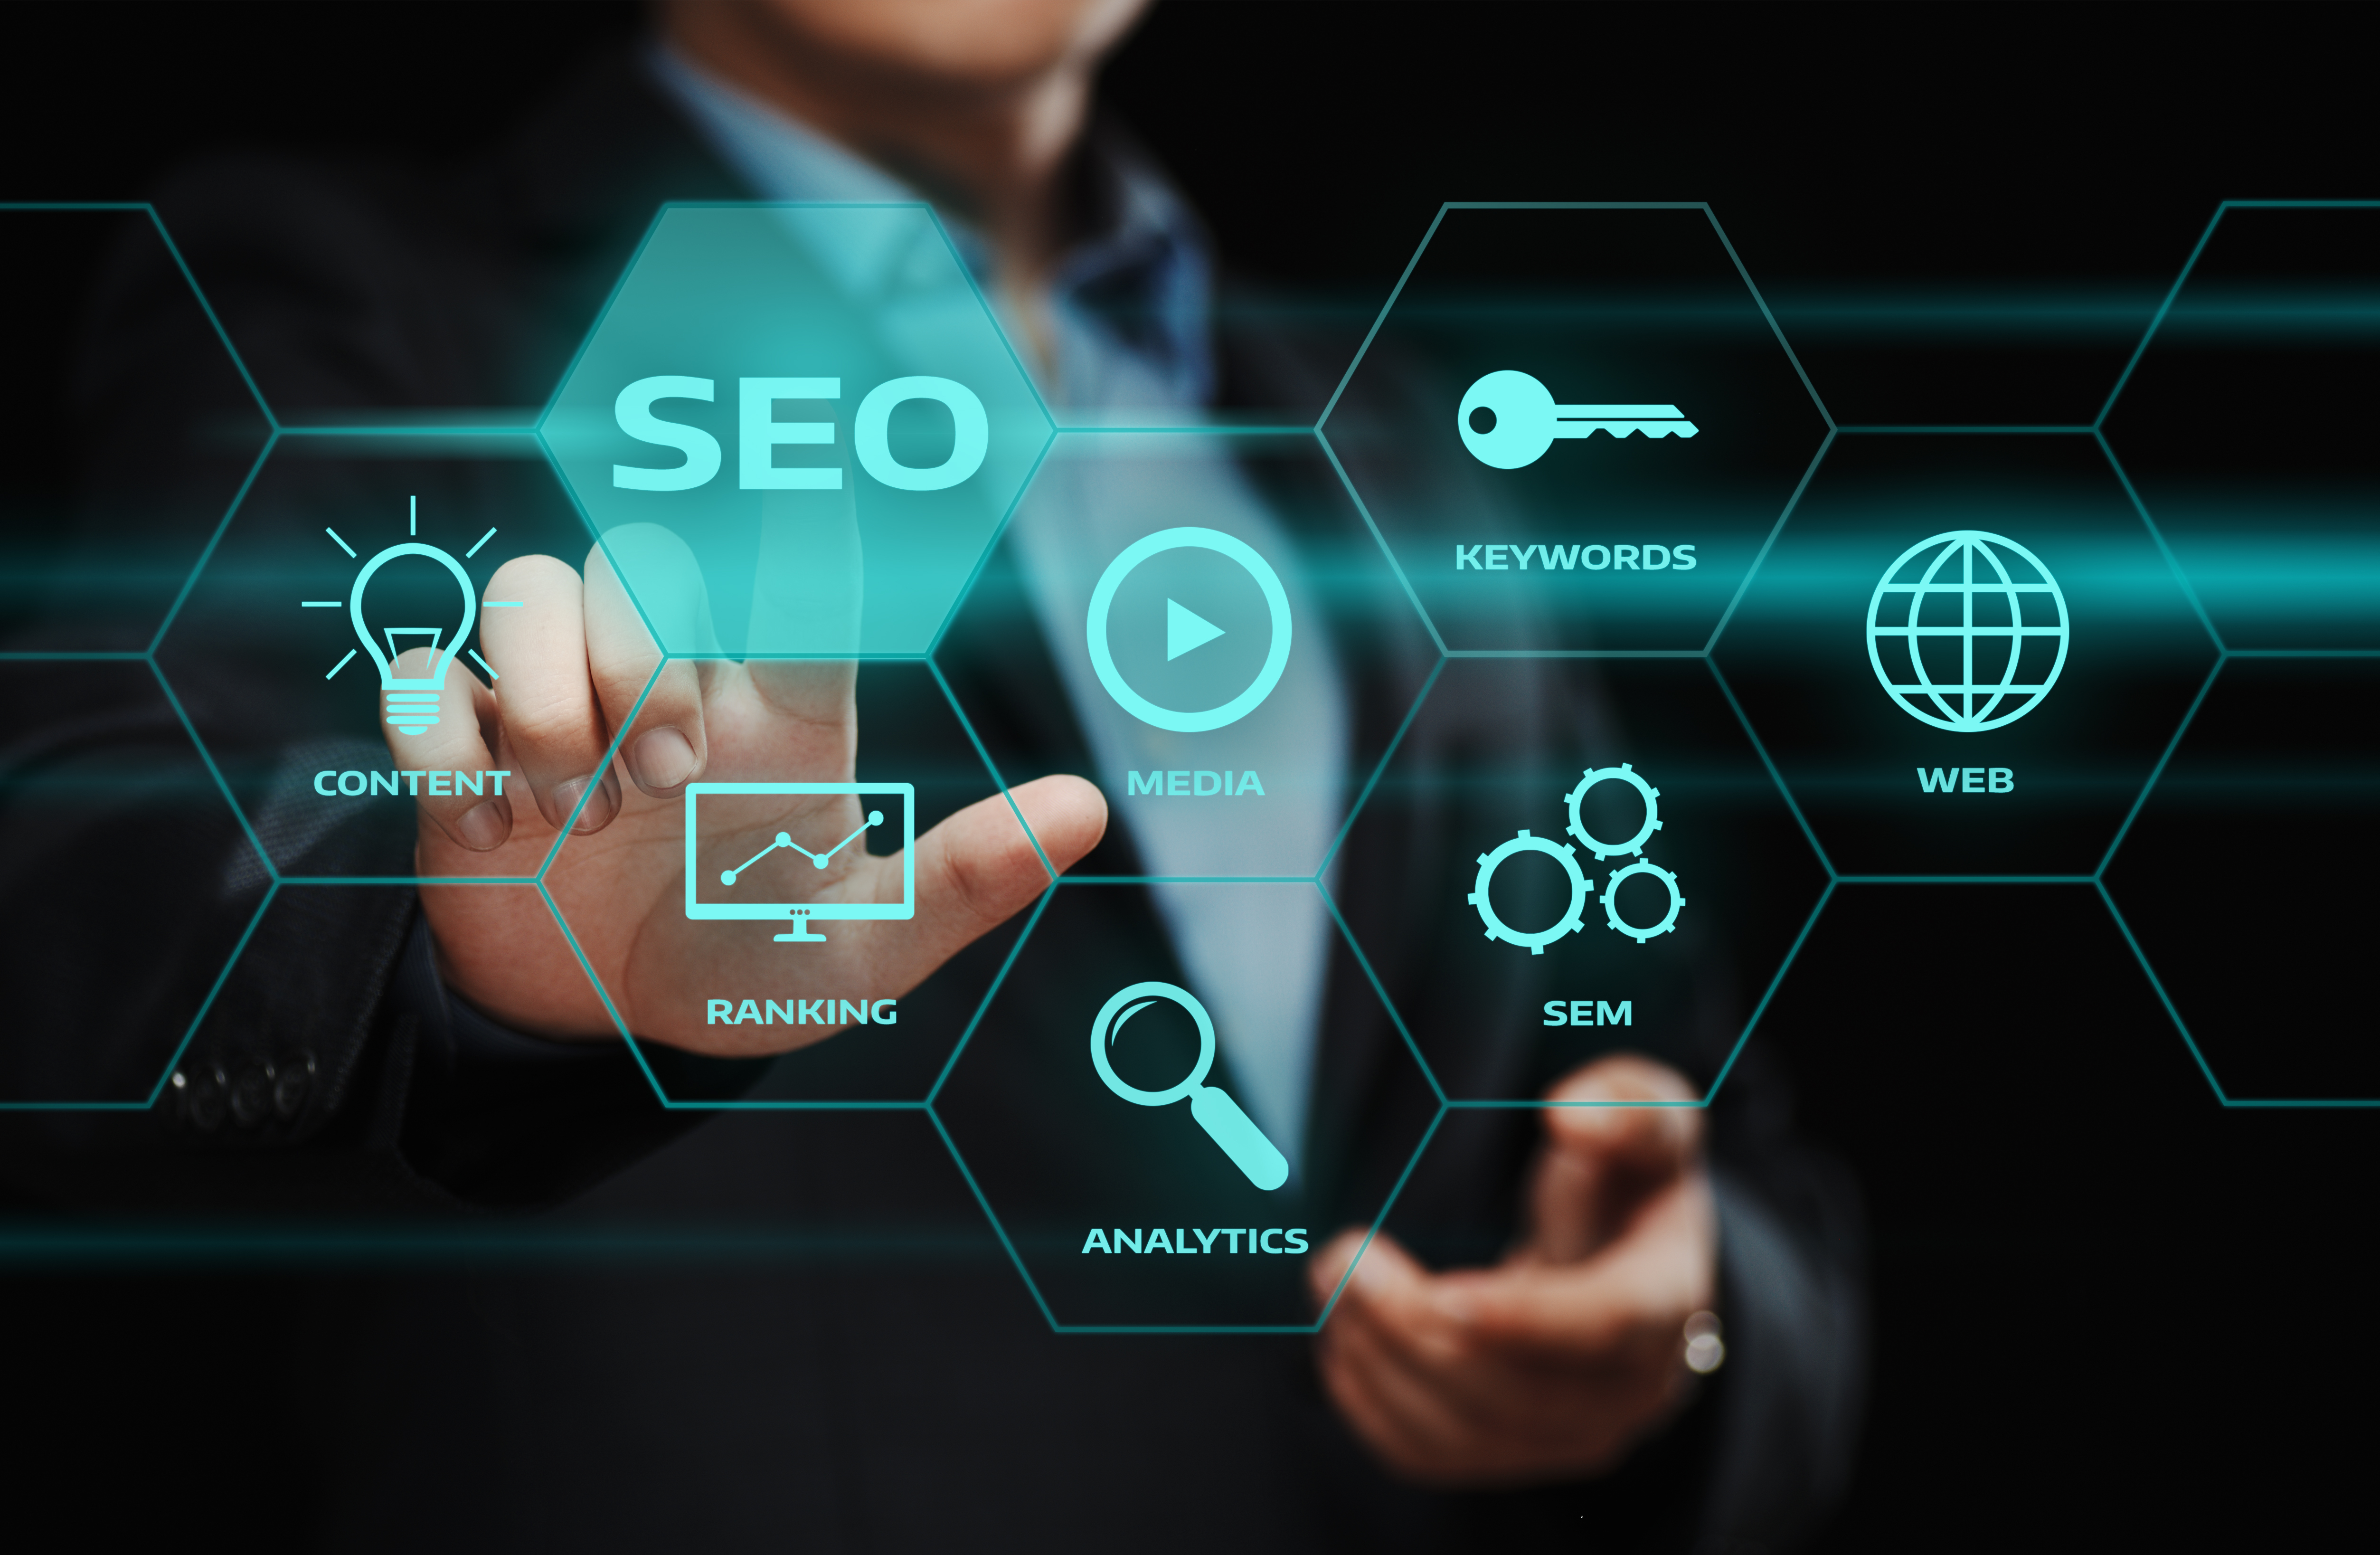 10 Secret SEO Tips From the Pros - MarketCrest